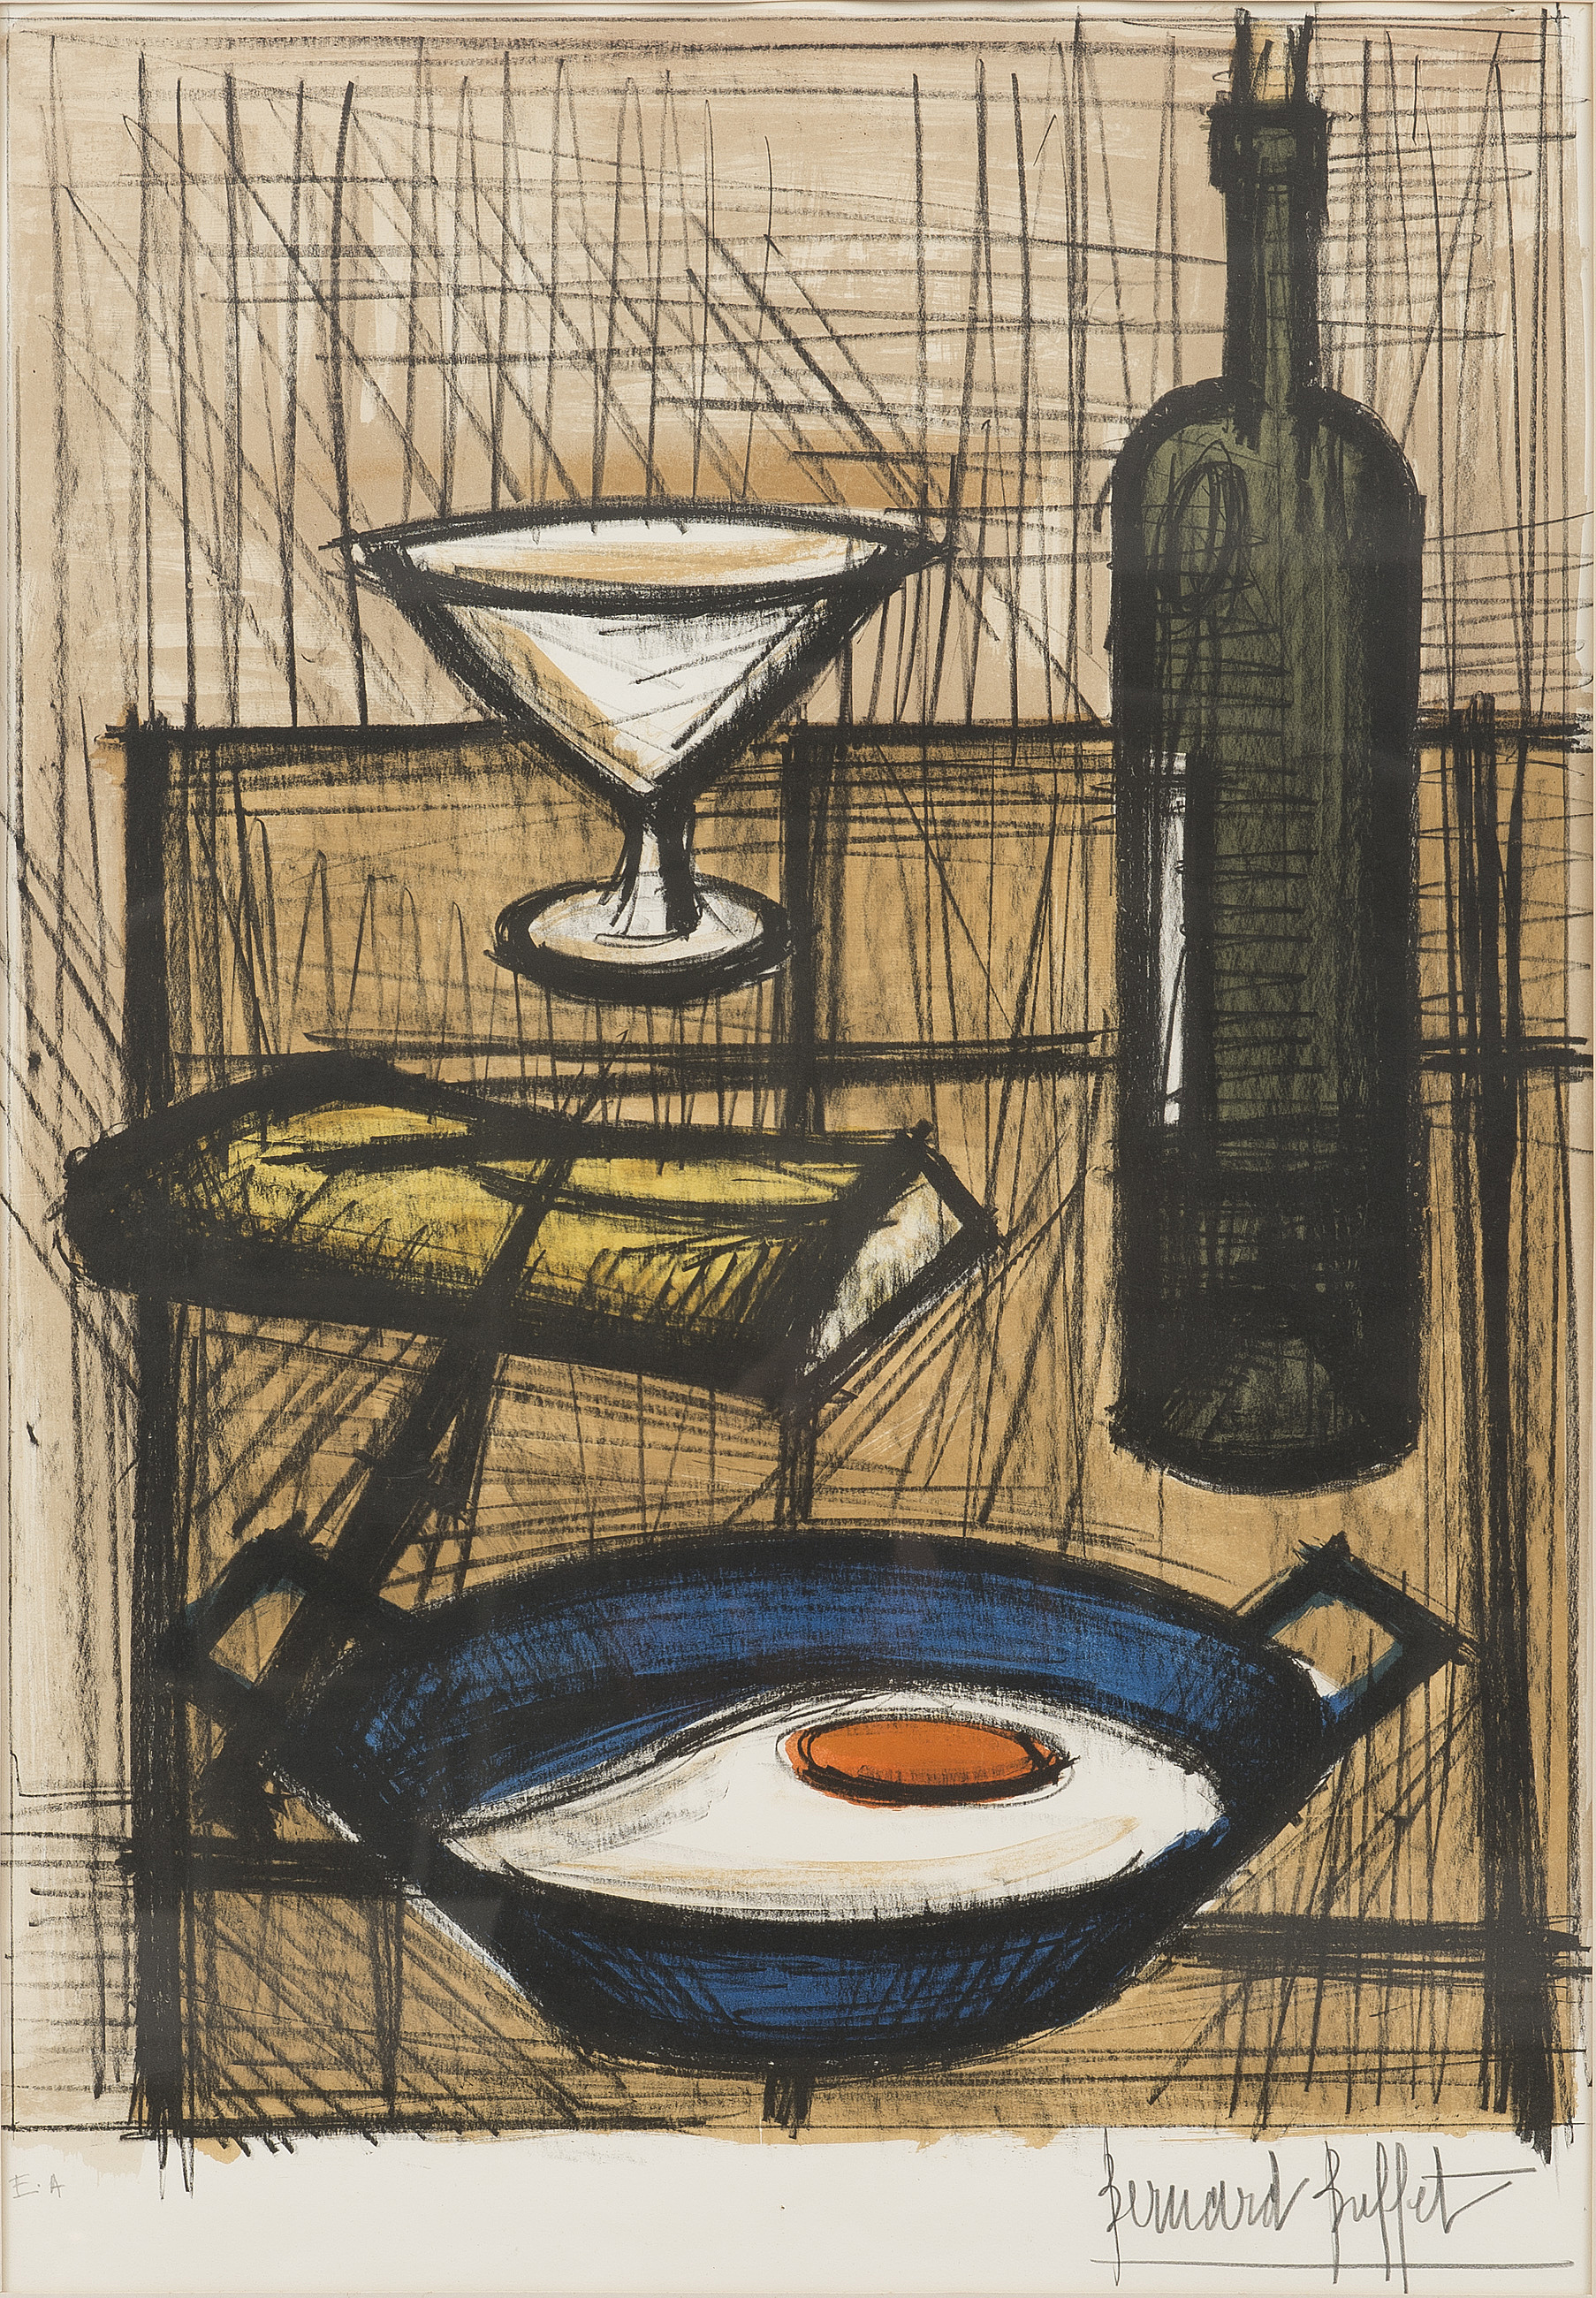 Peachy Bernard Buffet L Oeuf Sur Le Plat 1955 Bukowskis Home Interior And Landscaping Ologienasavecom